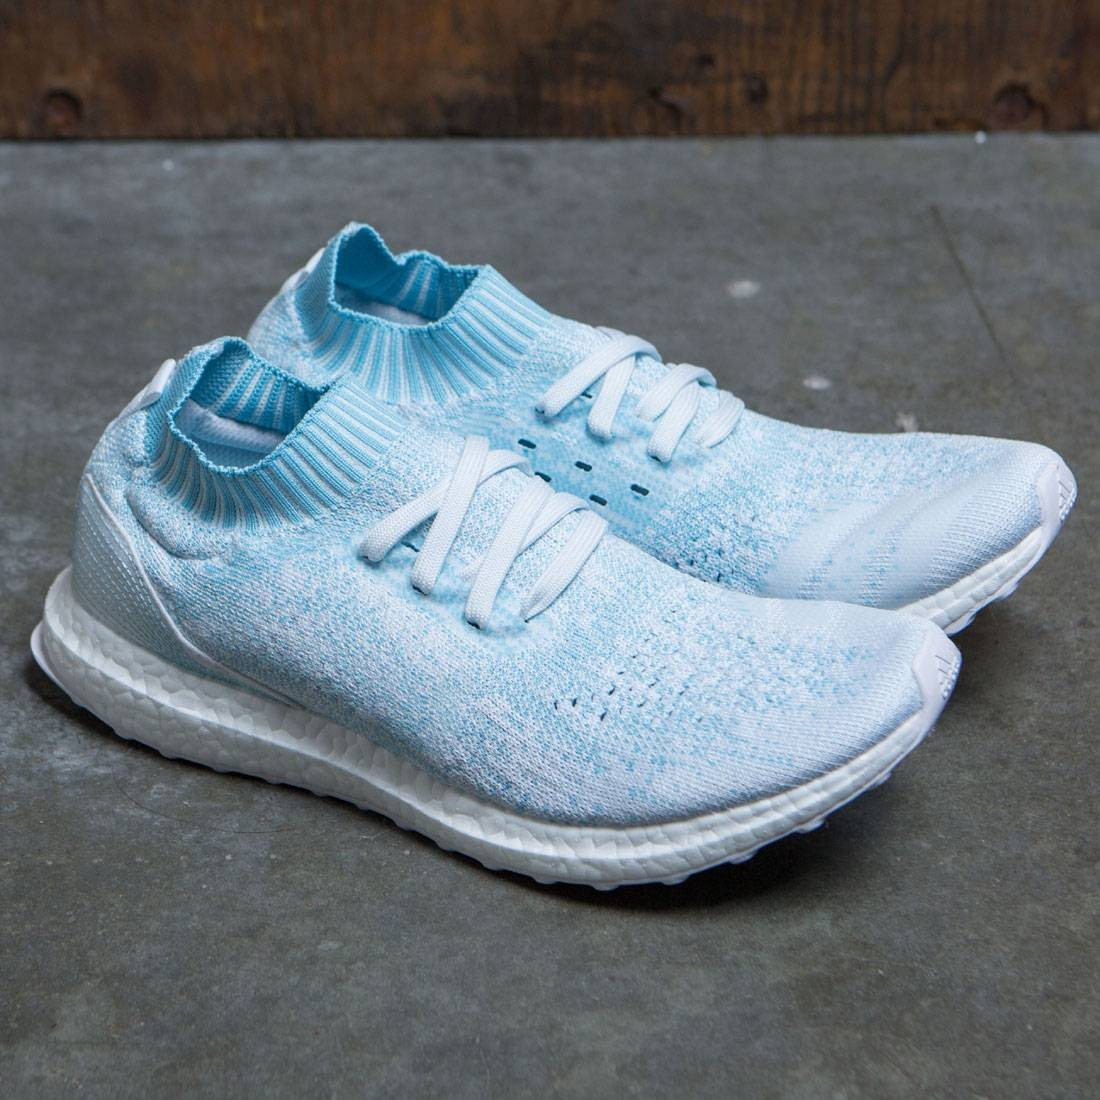 the latest 94ecf 1cd40 Adidas Men UltraBOOST Uncaged Parley (blue / icey blue / footwear white)